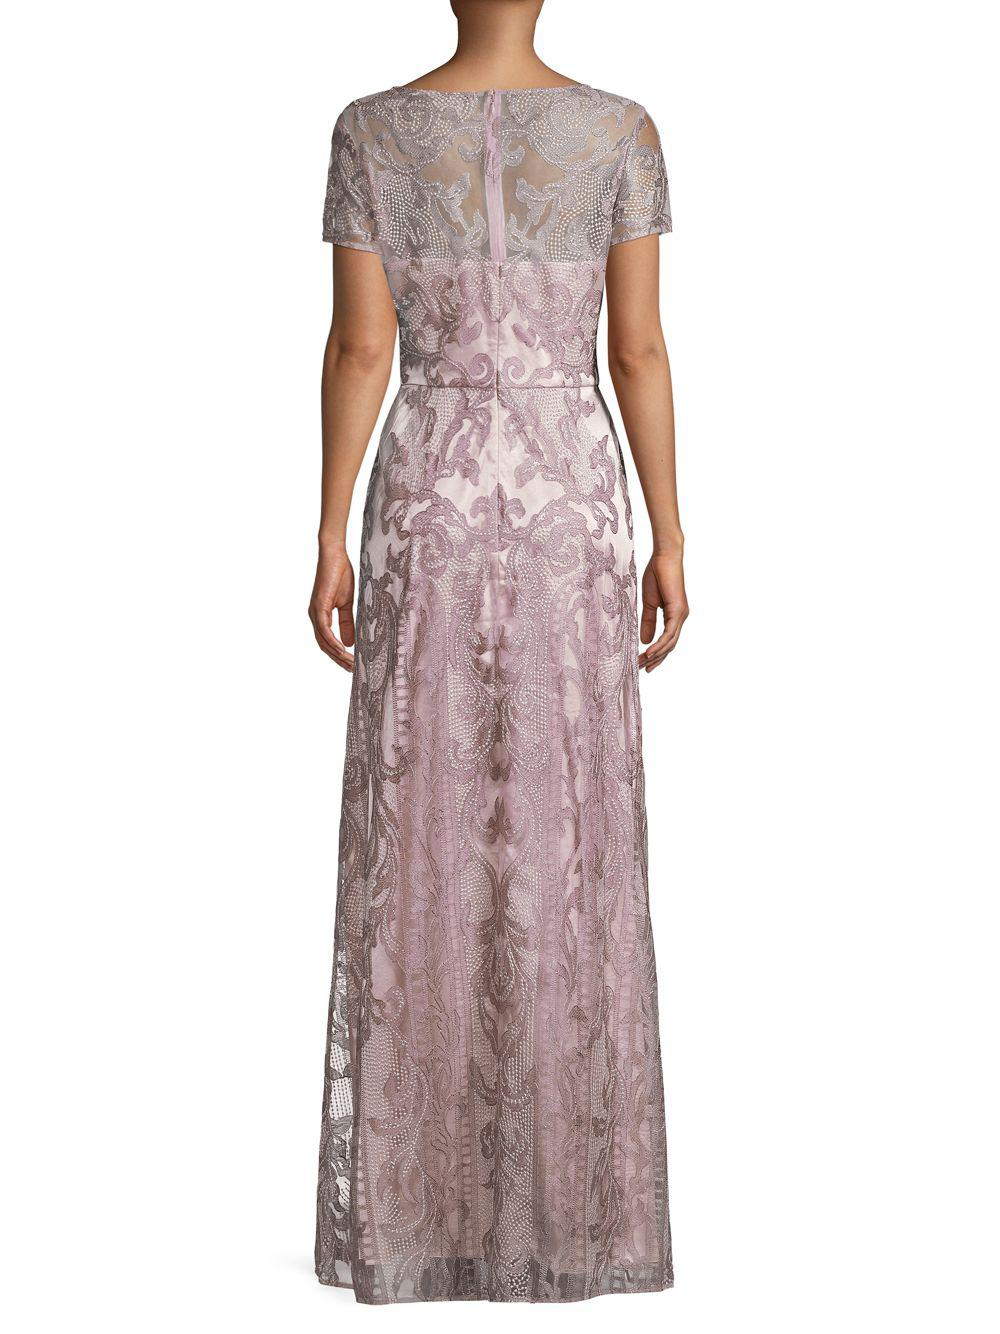 aa2298876a JS Collections - Pink Illusion Embroidered Column Gown - Lyst. View  fullscreen